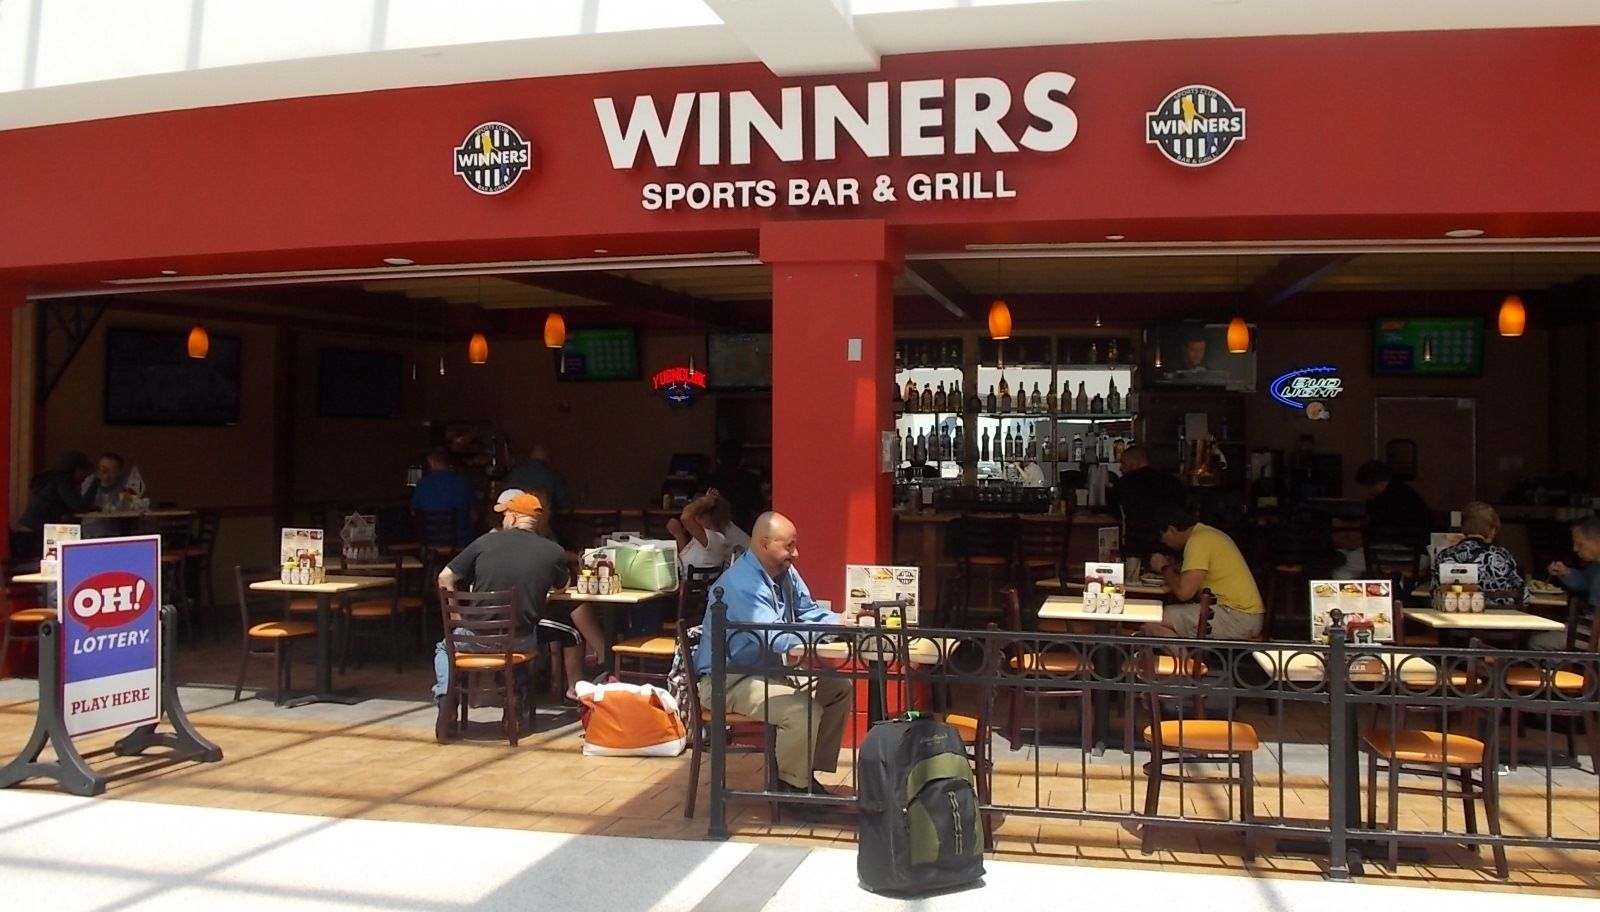 Winners Sports Bar And Grill In Concourse C Cleveland Airport Hopkins Http Www Clevelandairport Com Sports Bar Bar Grill Bar